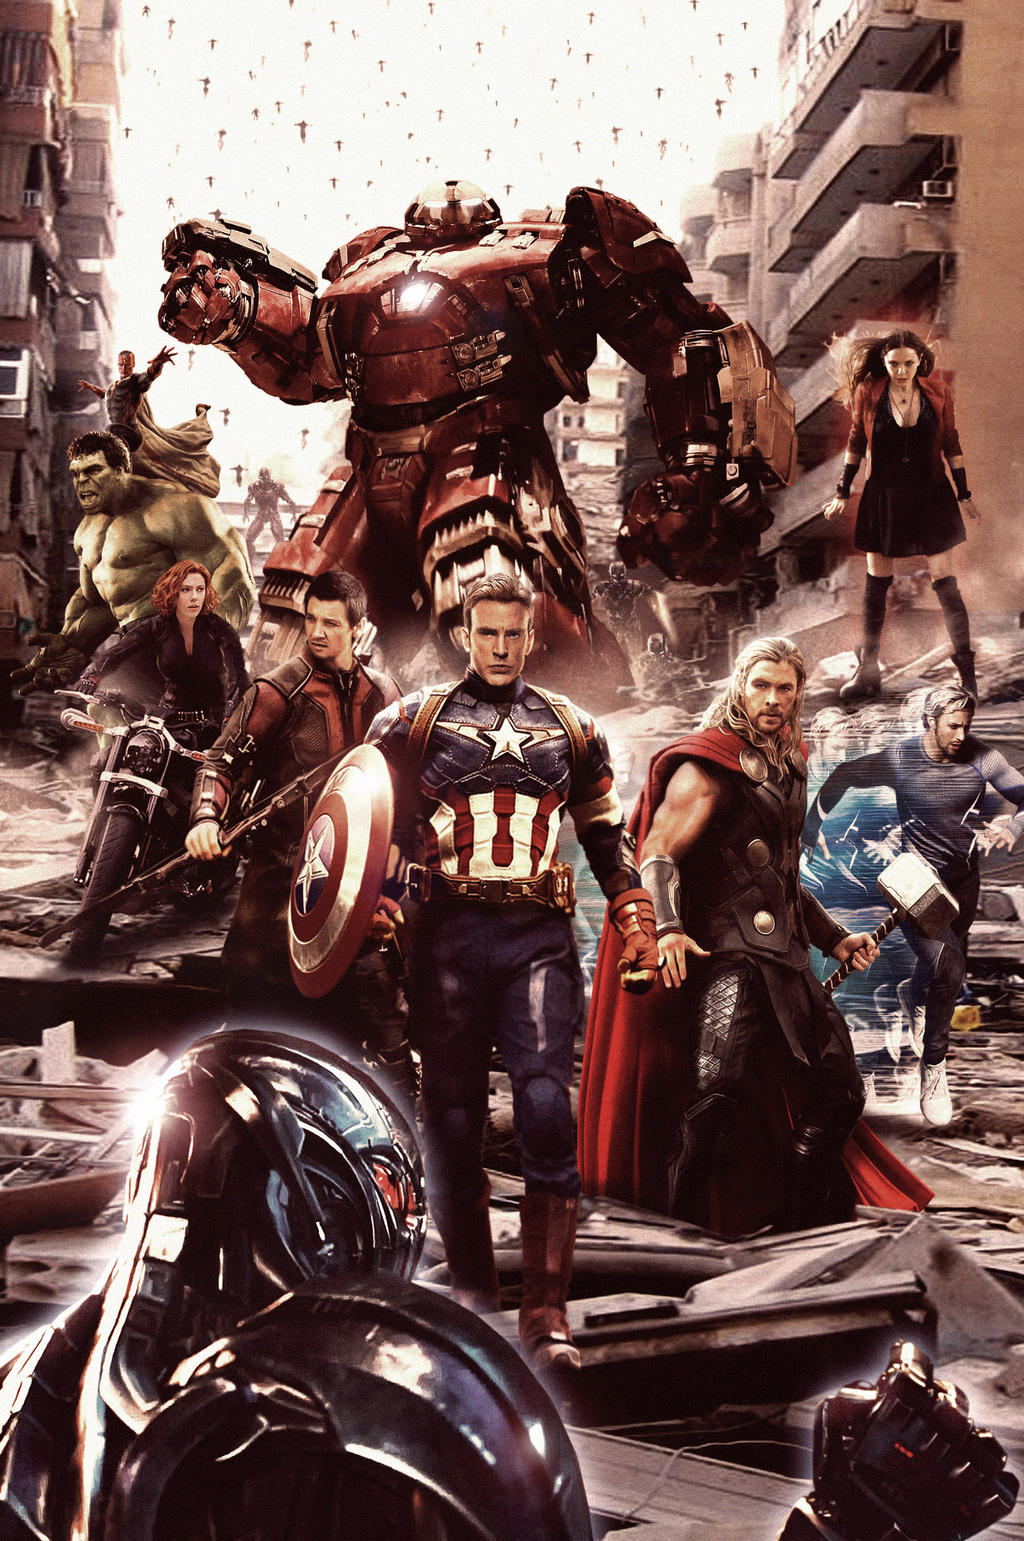 Avengers Age Of Ultron By Iloegbunam On Deviantart: AVENGERS : AGE OF ULTRON By N8MA On DeviantArt